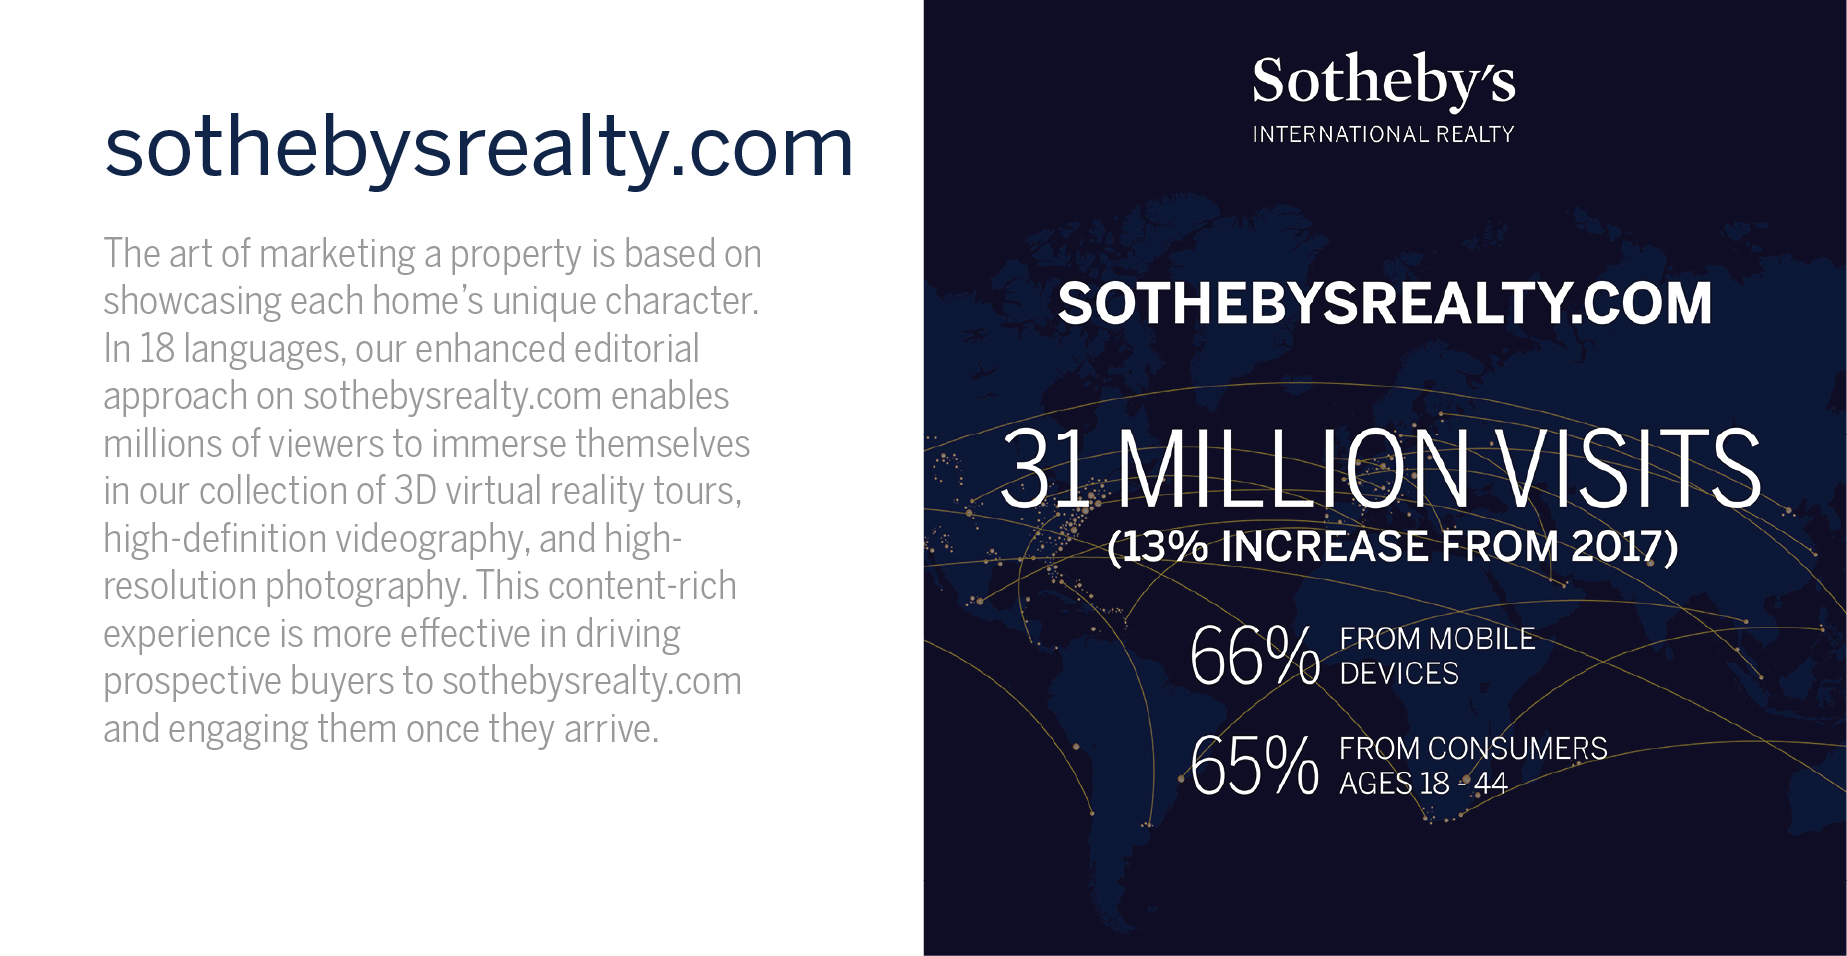 sothebysrealty.com - The art of marketing a property is based on showcasing each home's unique character. In 18 languages, our enhanced editorial approach on sothebysrealty.com enables millions of viewers to immerse themselves in our collection of 3D virtual reality tours, high-definition videography, and high-resolution photography. This content-rich experience is more effective in driving prospective buyers to sothebysrealty.com and engaging them once they arrive.